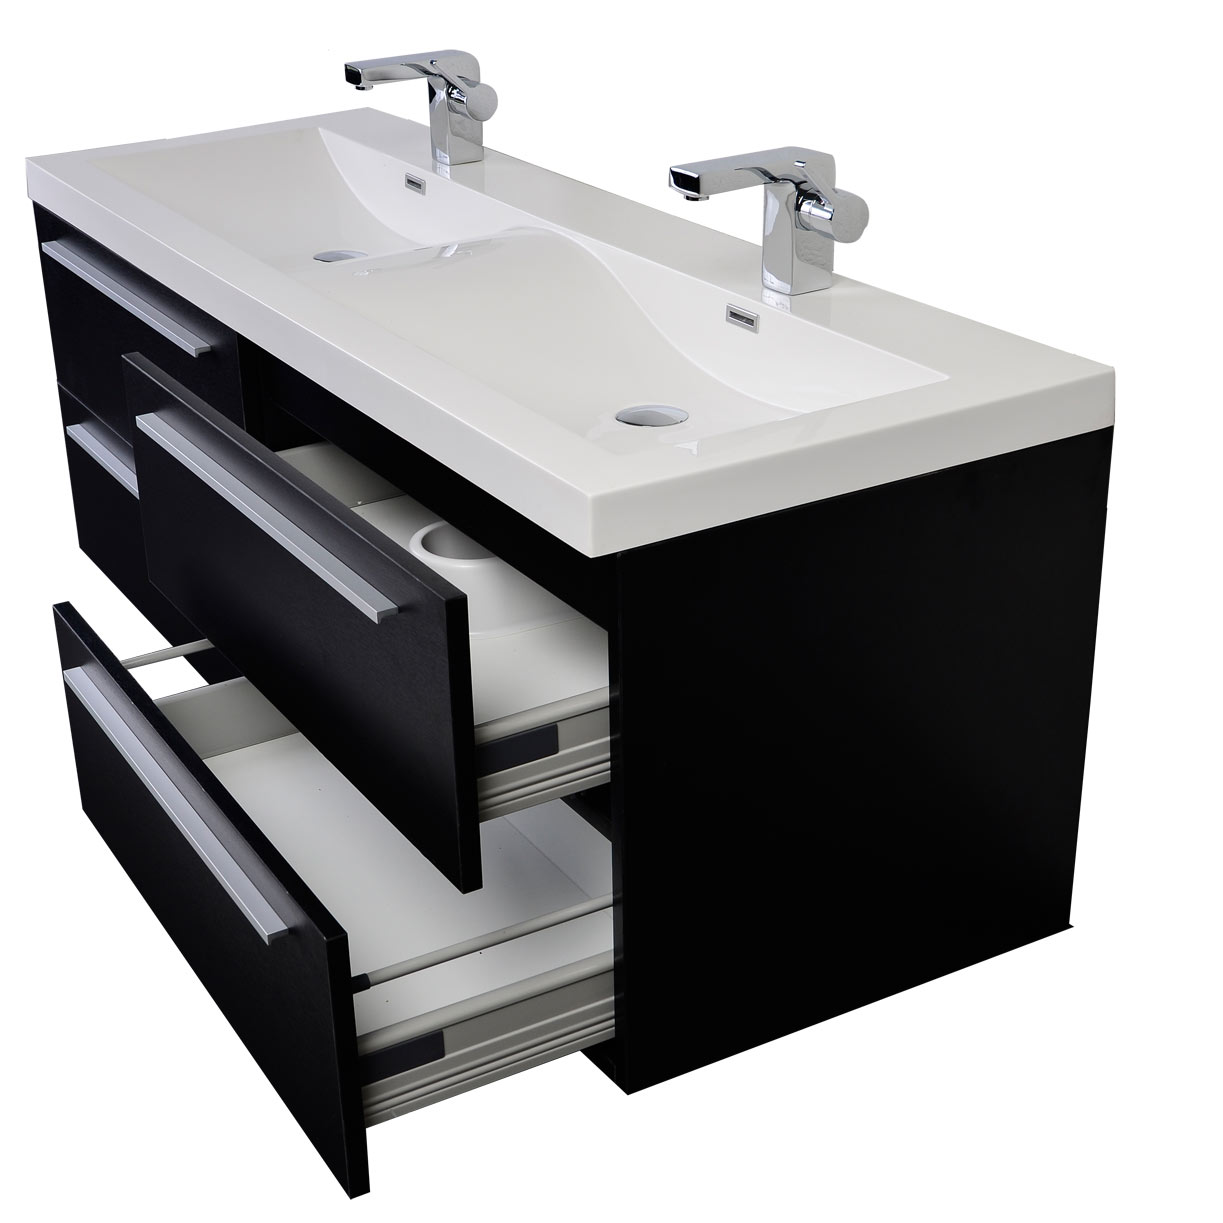 Two Sink Vanities 57 Inch Modern Double Sink Vanity Set With Wavy Sinks